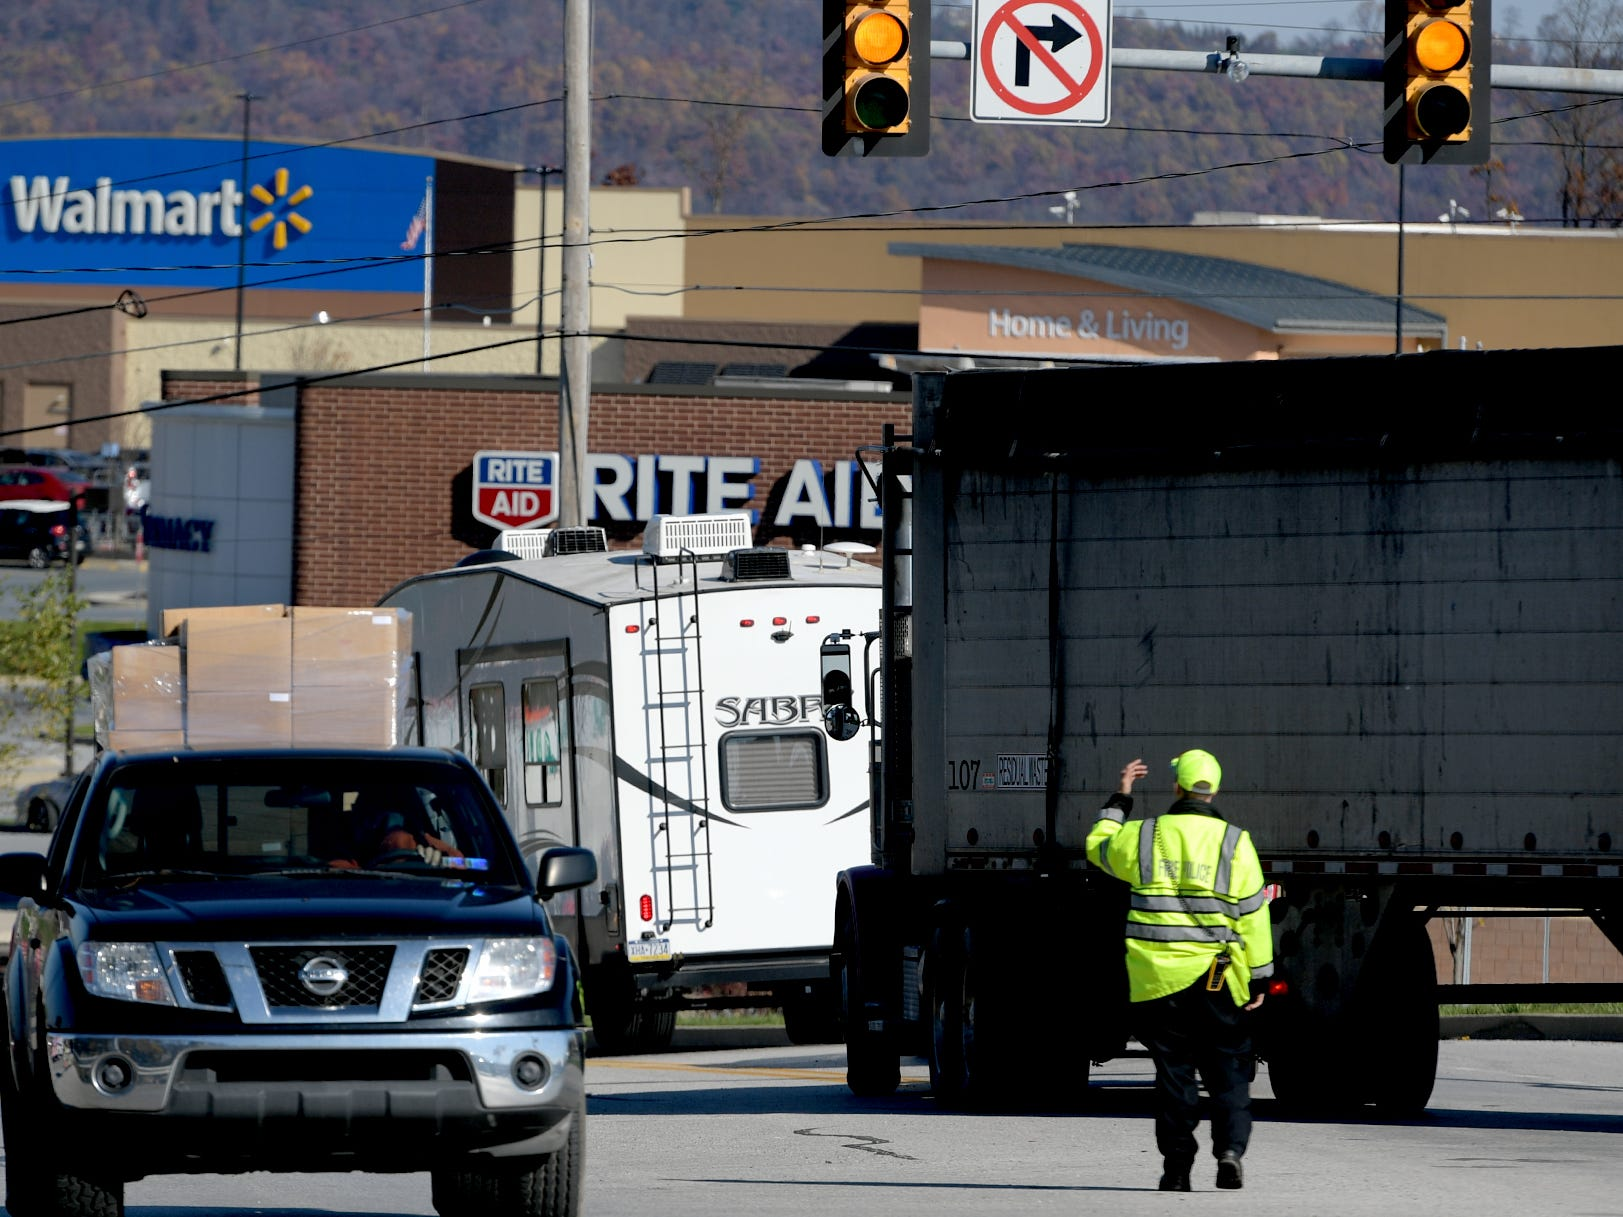 Traffic is directed at the Exit 33, Yocumtown, after a fatal accident occurred on northbound I-83, south of Exit 34, Valley Green, Thursday, Nov. 8, 2018. Northbound lanes of the interstate were closed for several hours after the crash which occurred just before 9 a.m. Bill Kalina photo